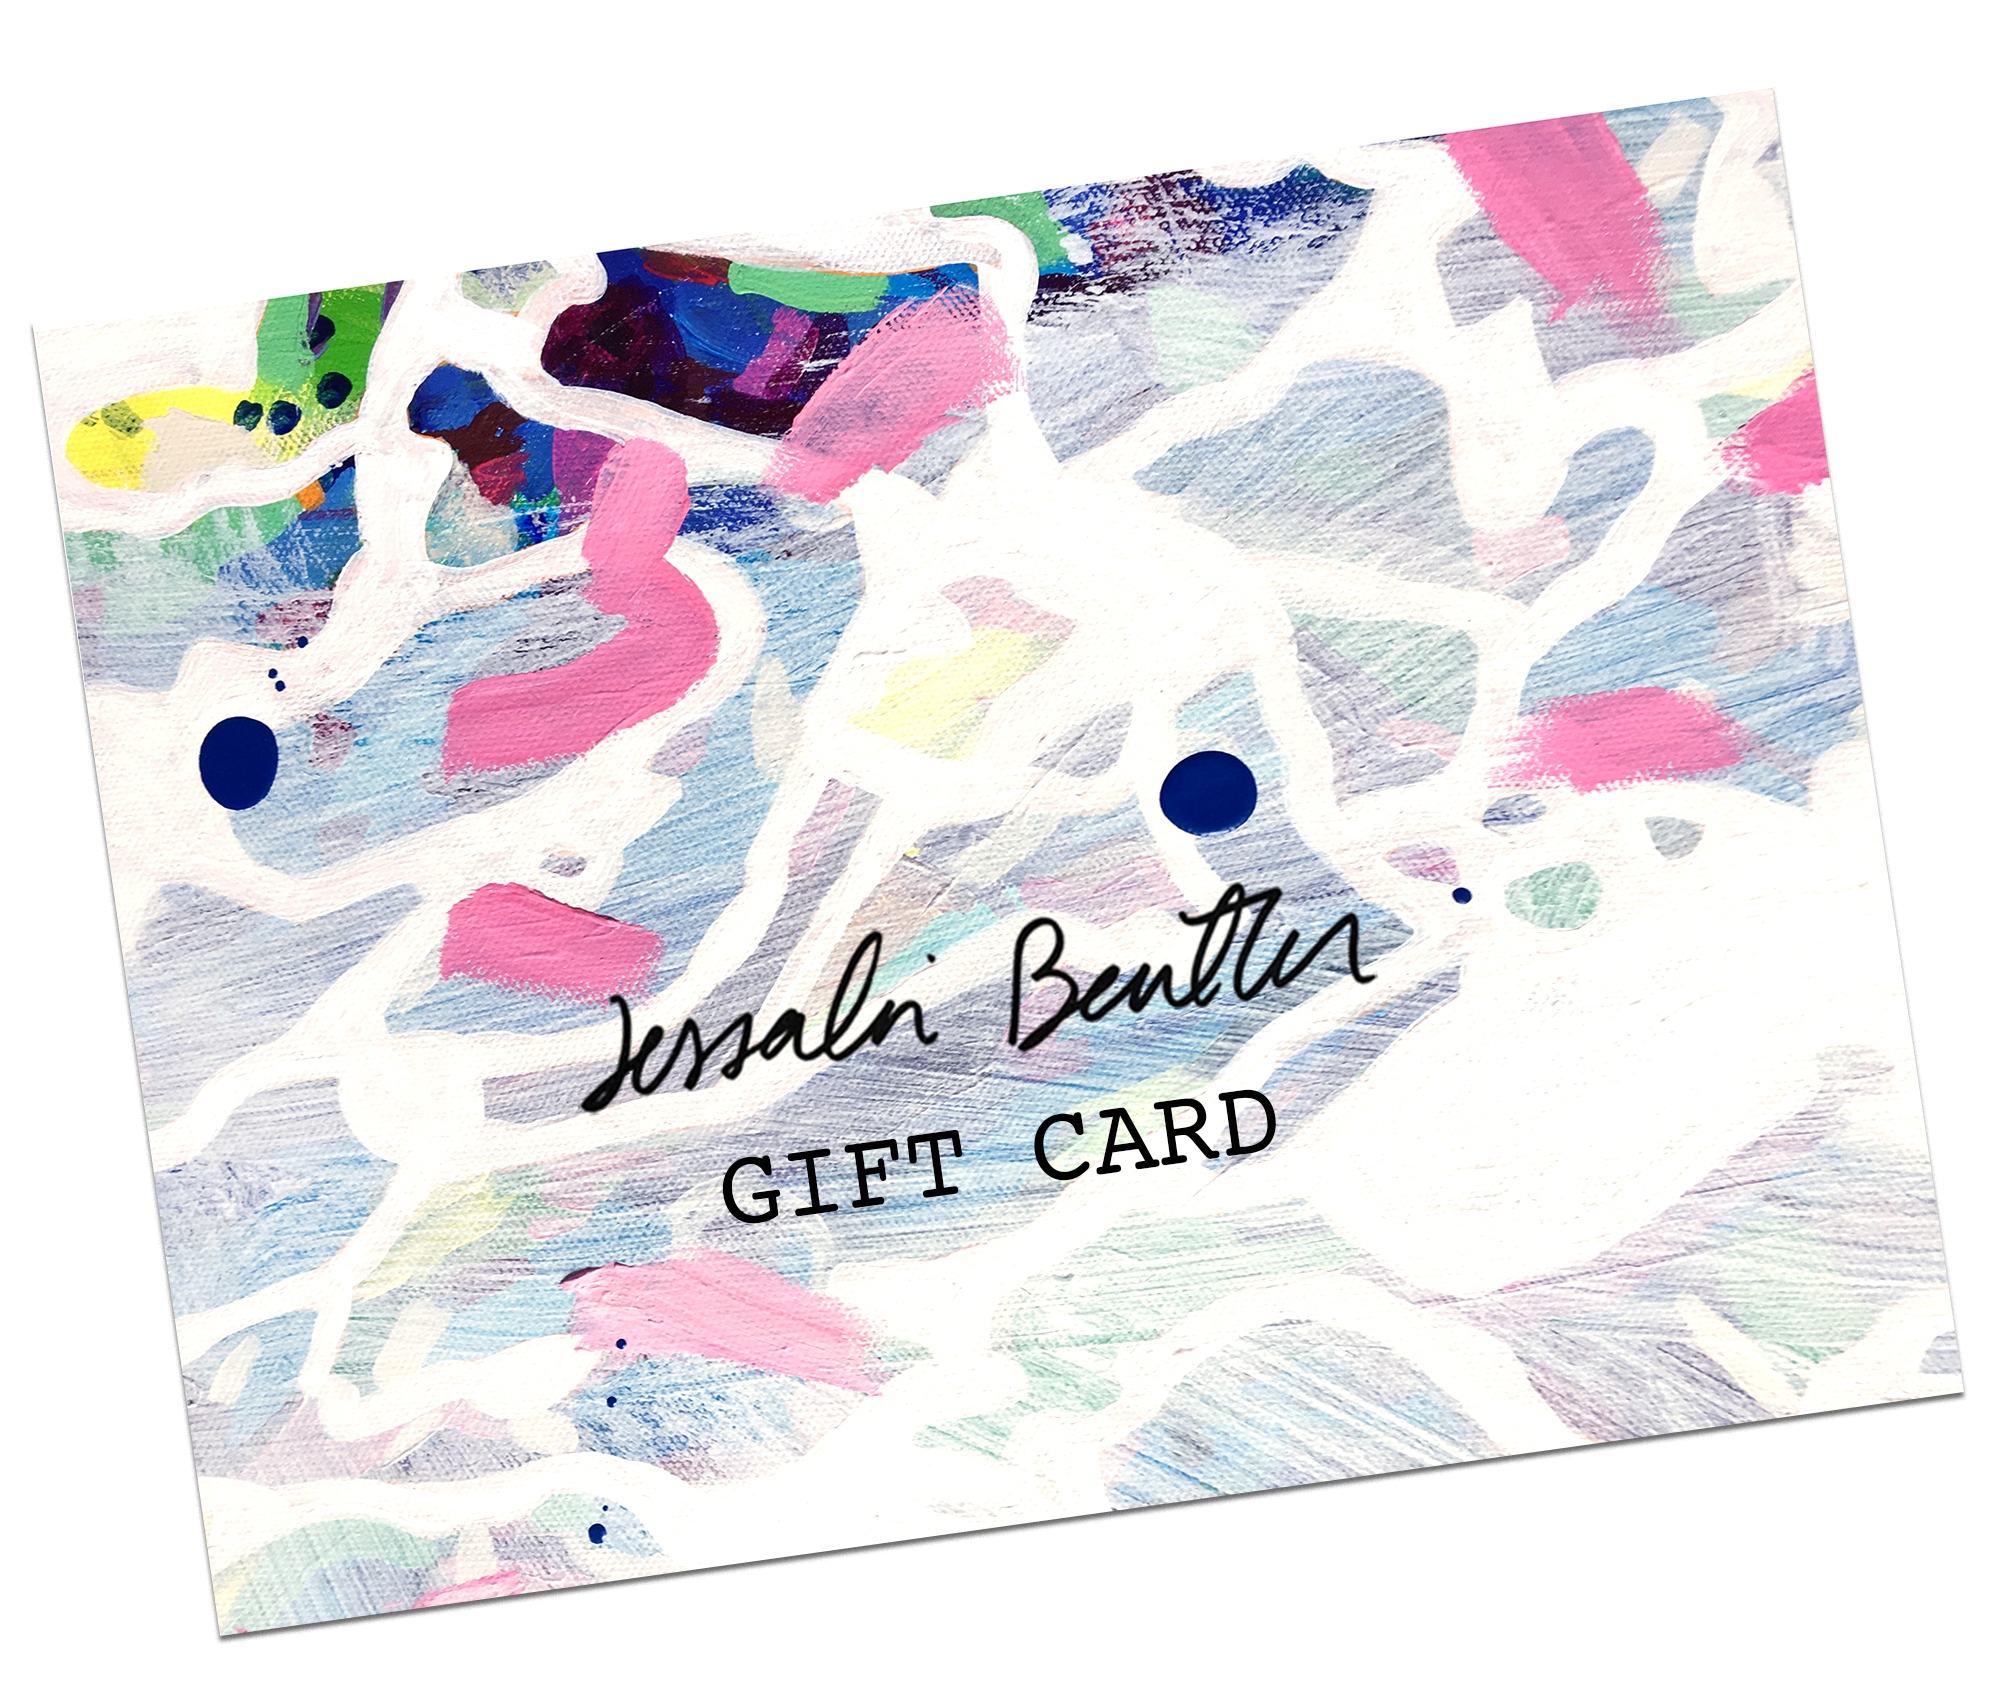 Digital Gift Cards - ..for you or a friend. You will get a unique code emailed that can applied to any order. Use it as a gift or a layaway plan for yourself!